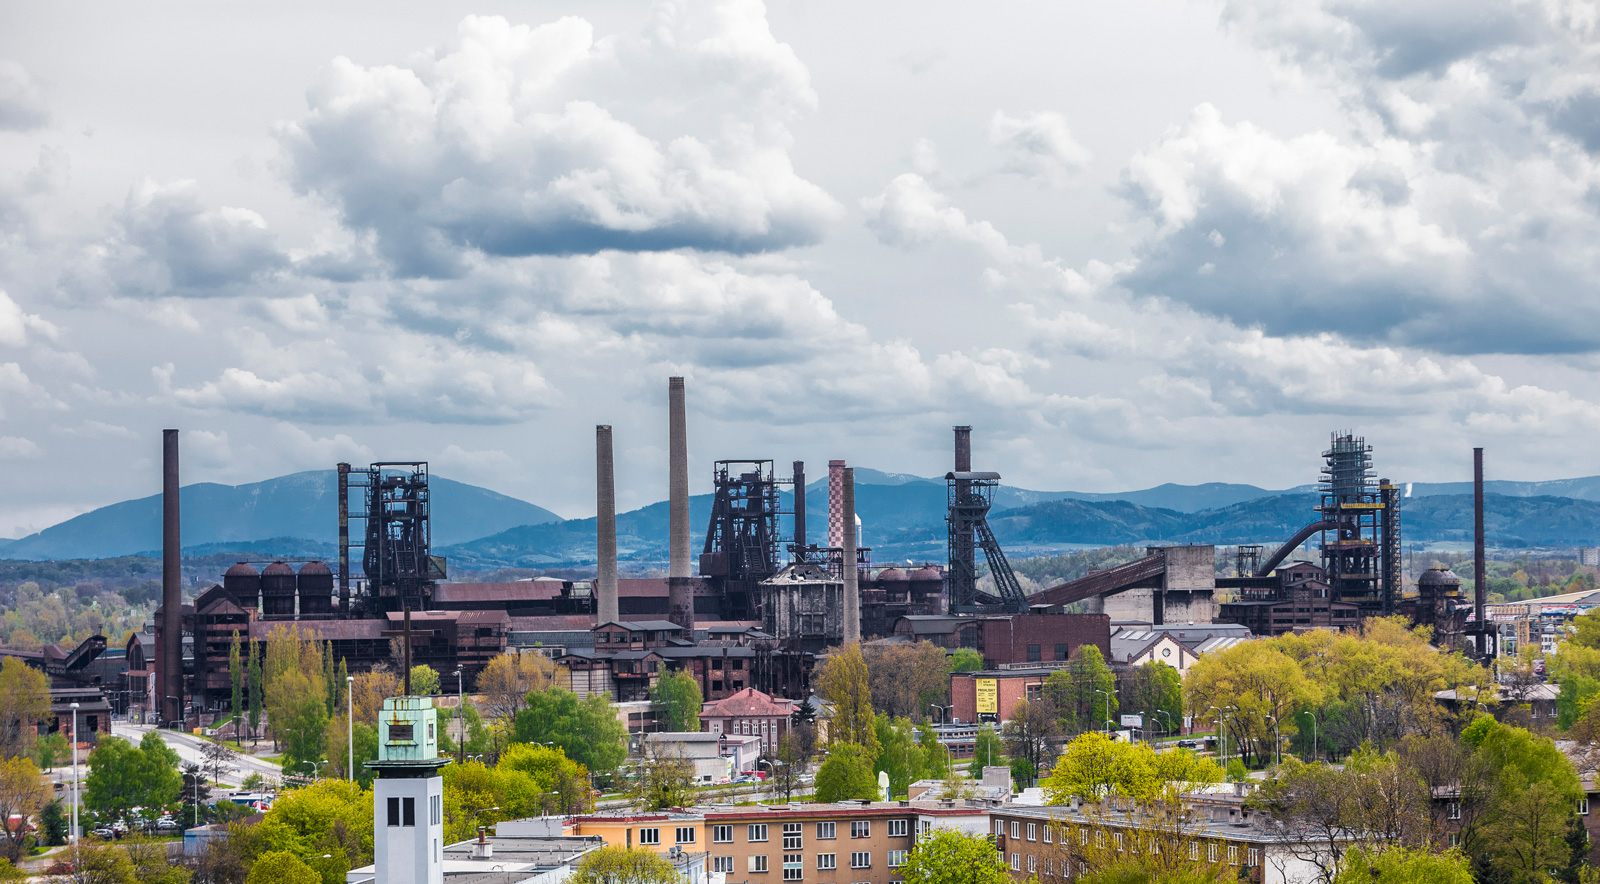 The Colours of Ostrava Festival industrial site